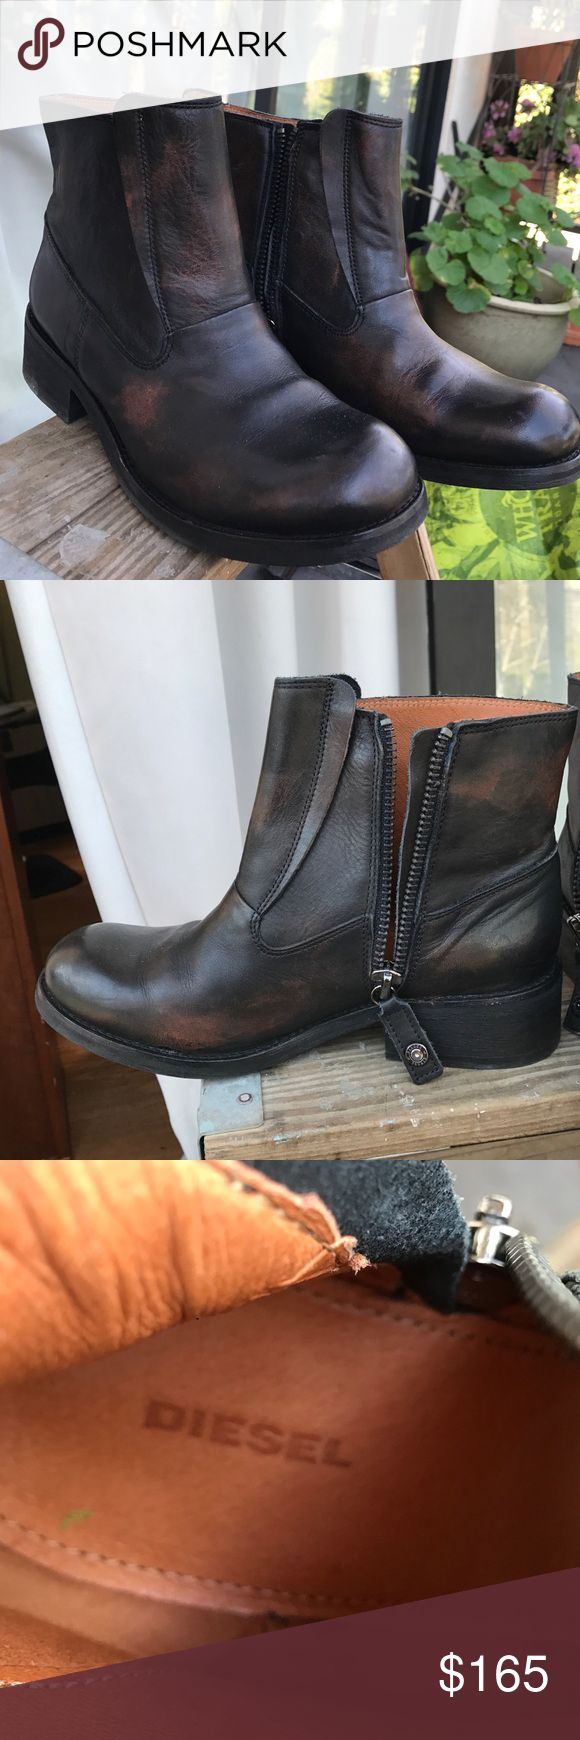 Diesel boots Brand new black and brown kind of antique finish ankle boot Diesel Shoes Ankle Boots & Booties